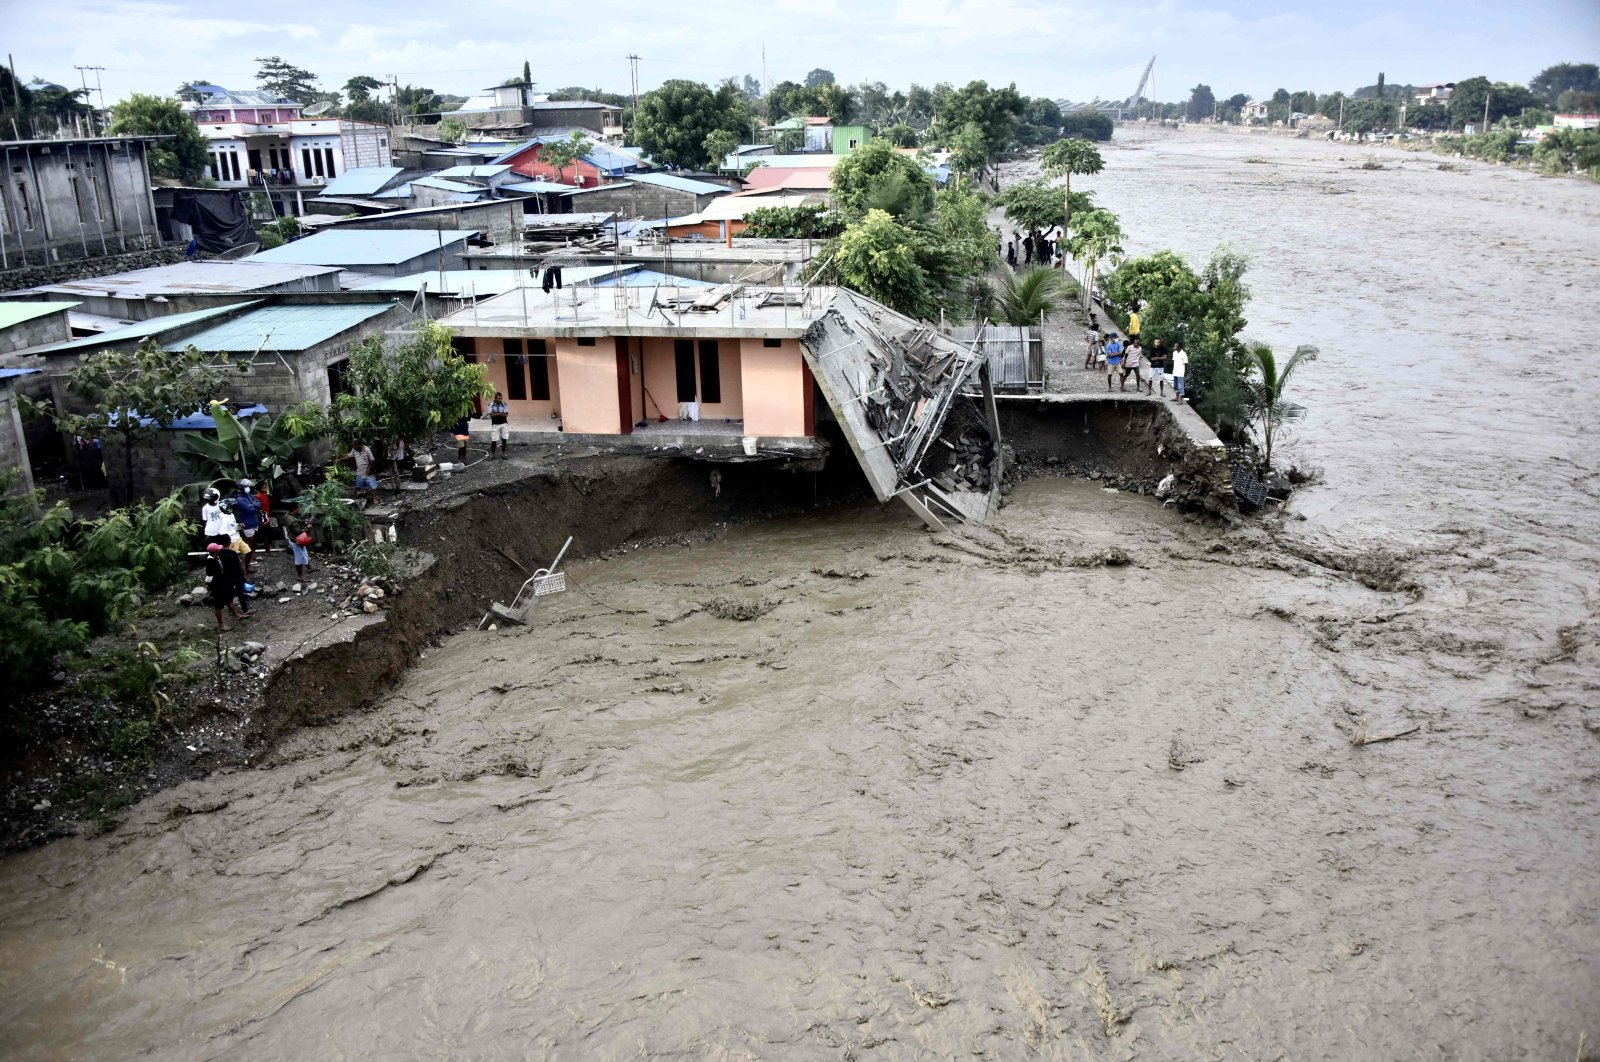 Residents stand along the water's edge by damaged homes after heavy rains and strong winds lashed East Timor's capital Dili overnight causing extensive flooding, Dili, East Timor, April 4, 2021. (AFP Photo)